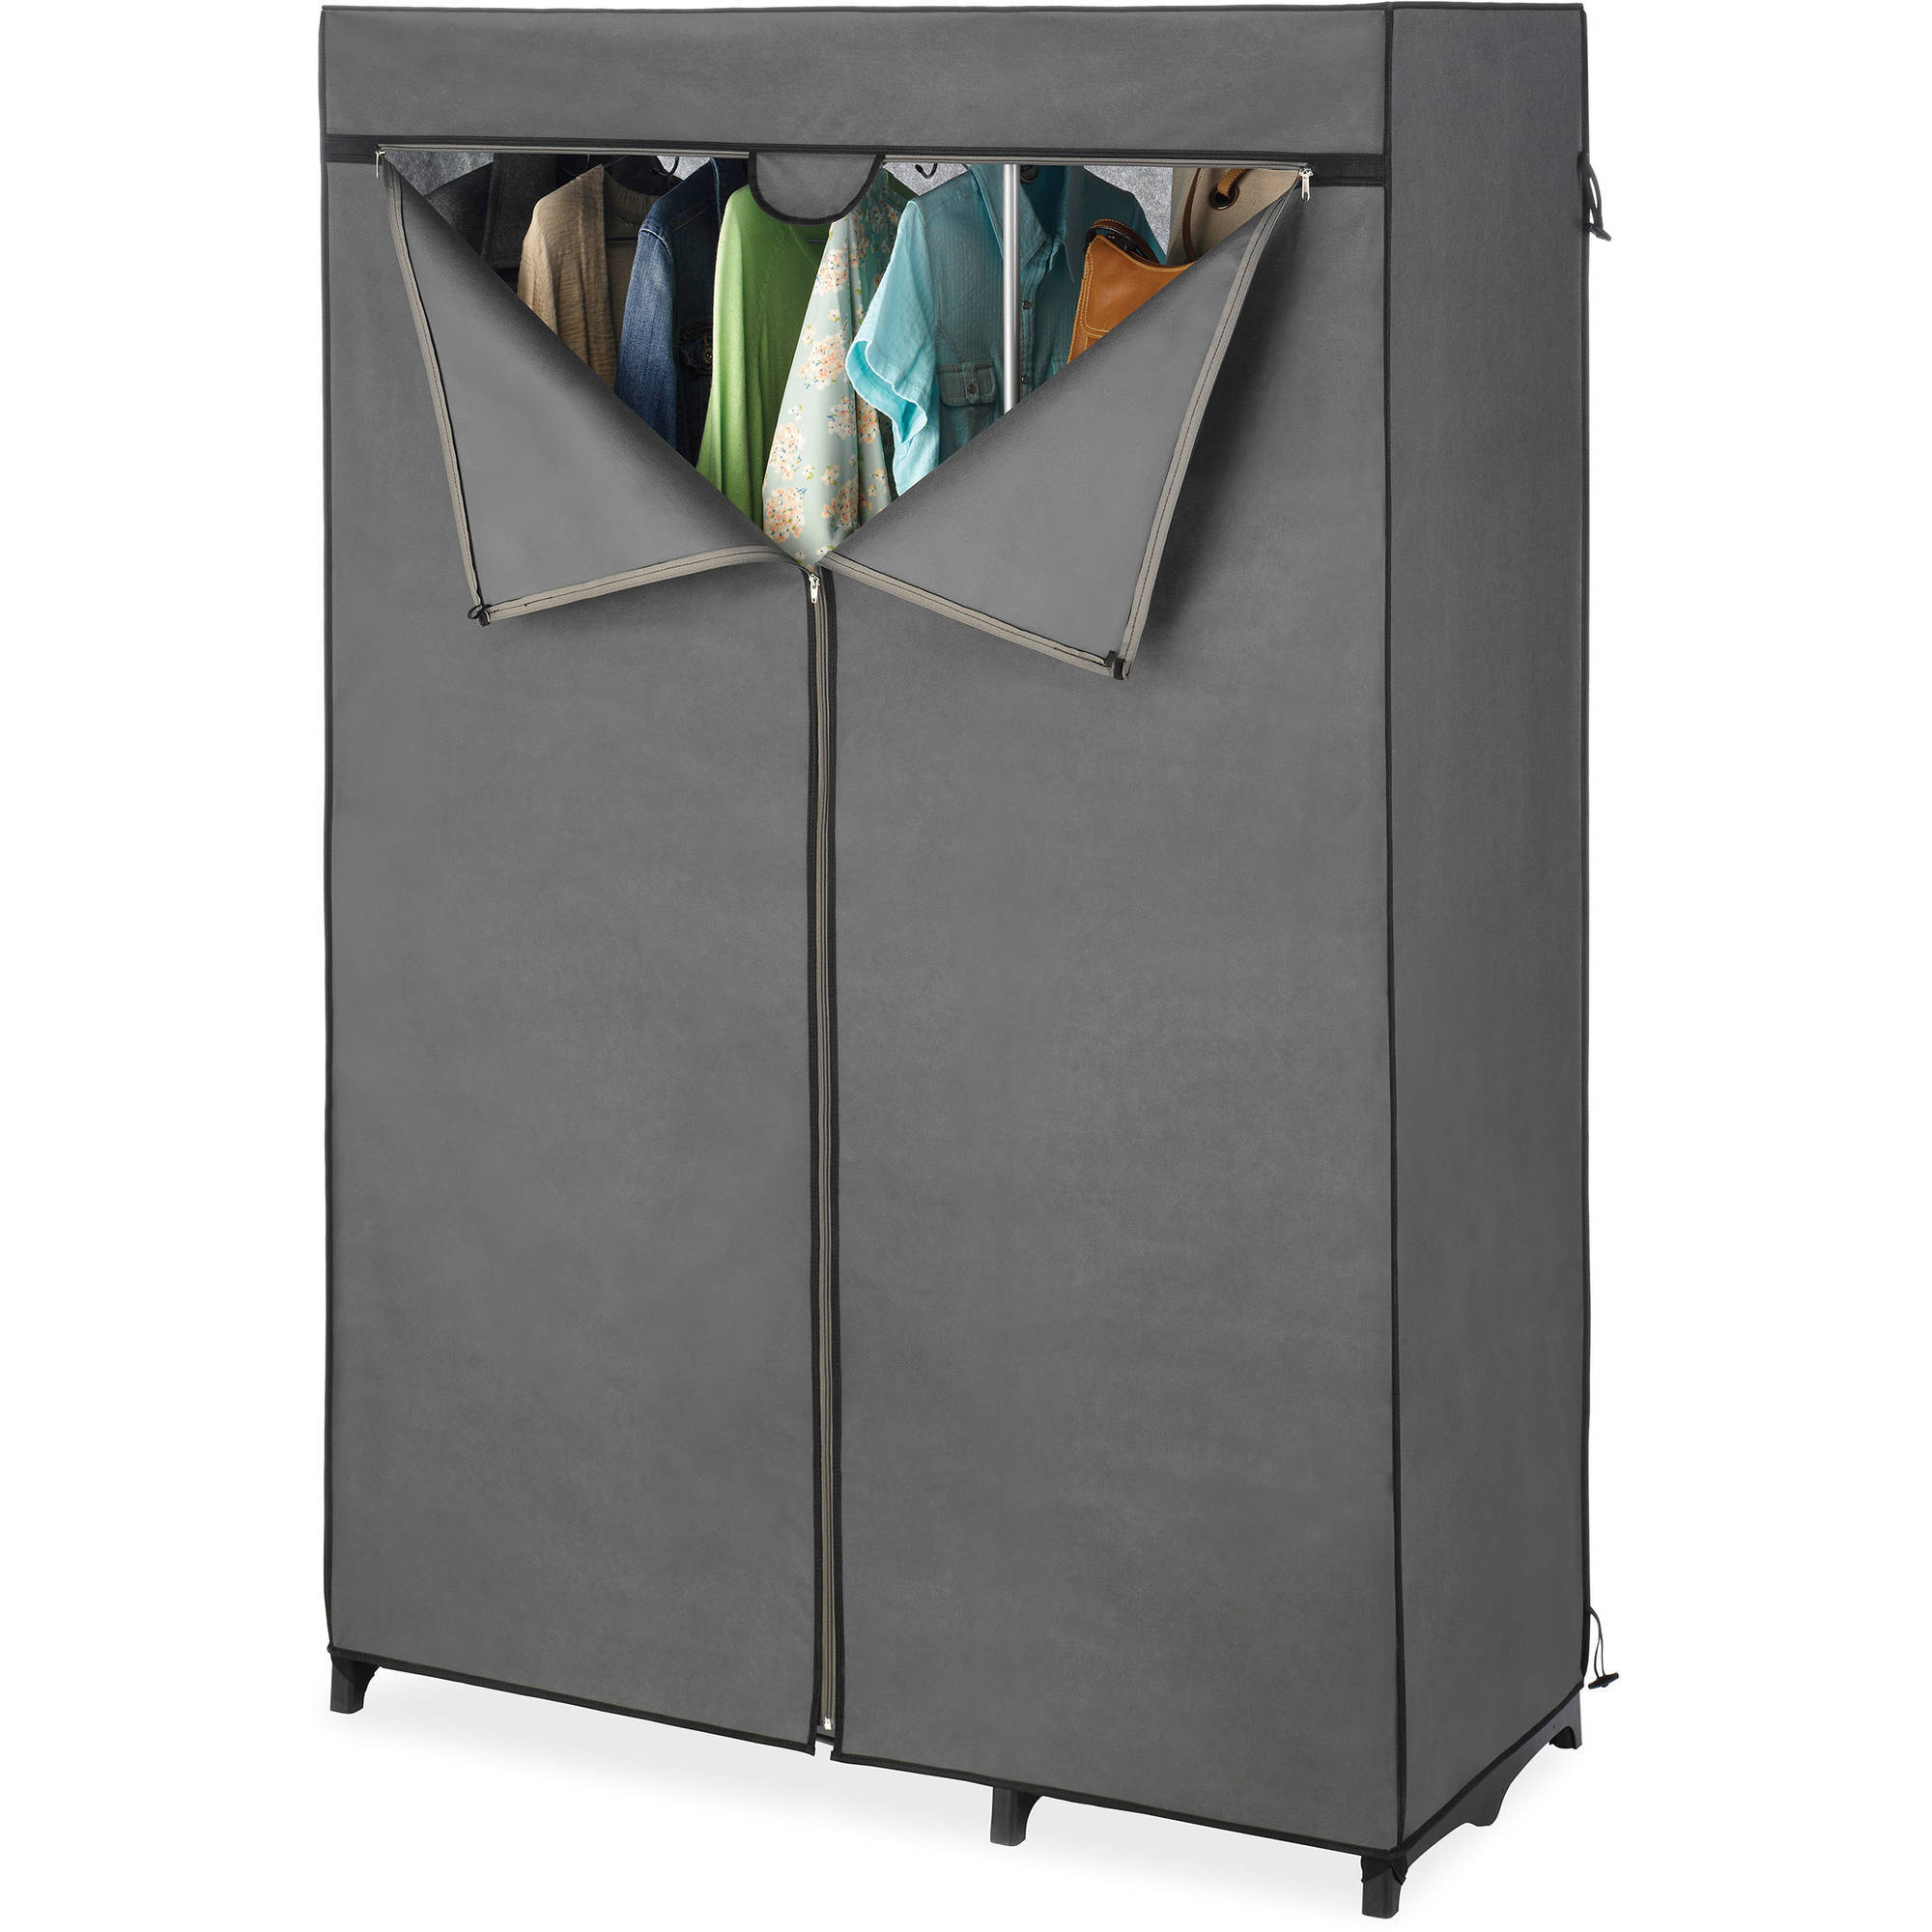 wayfair storage reviews mills pdx cabinet pair cormiers closet andover portable organization shoe